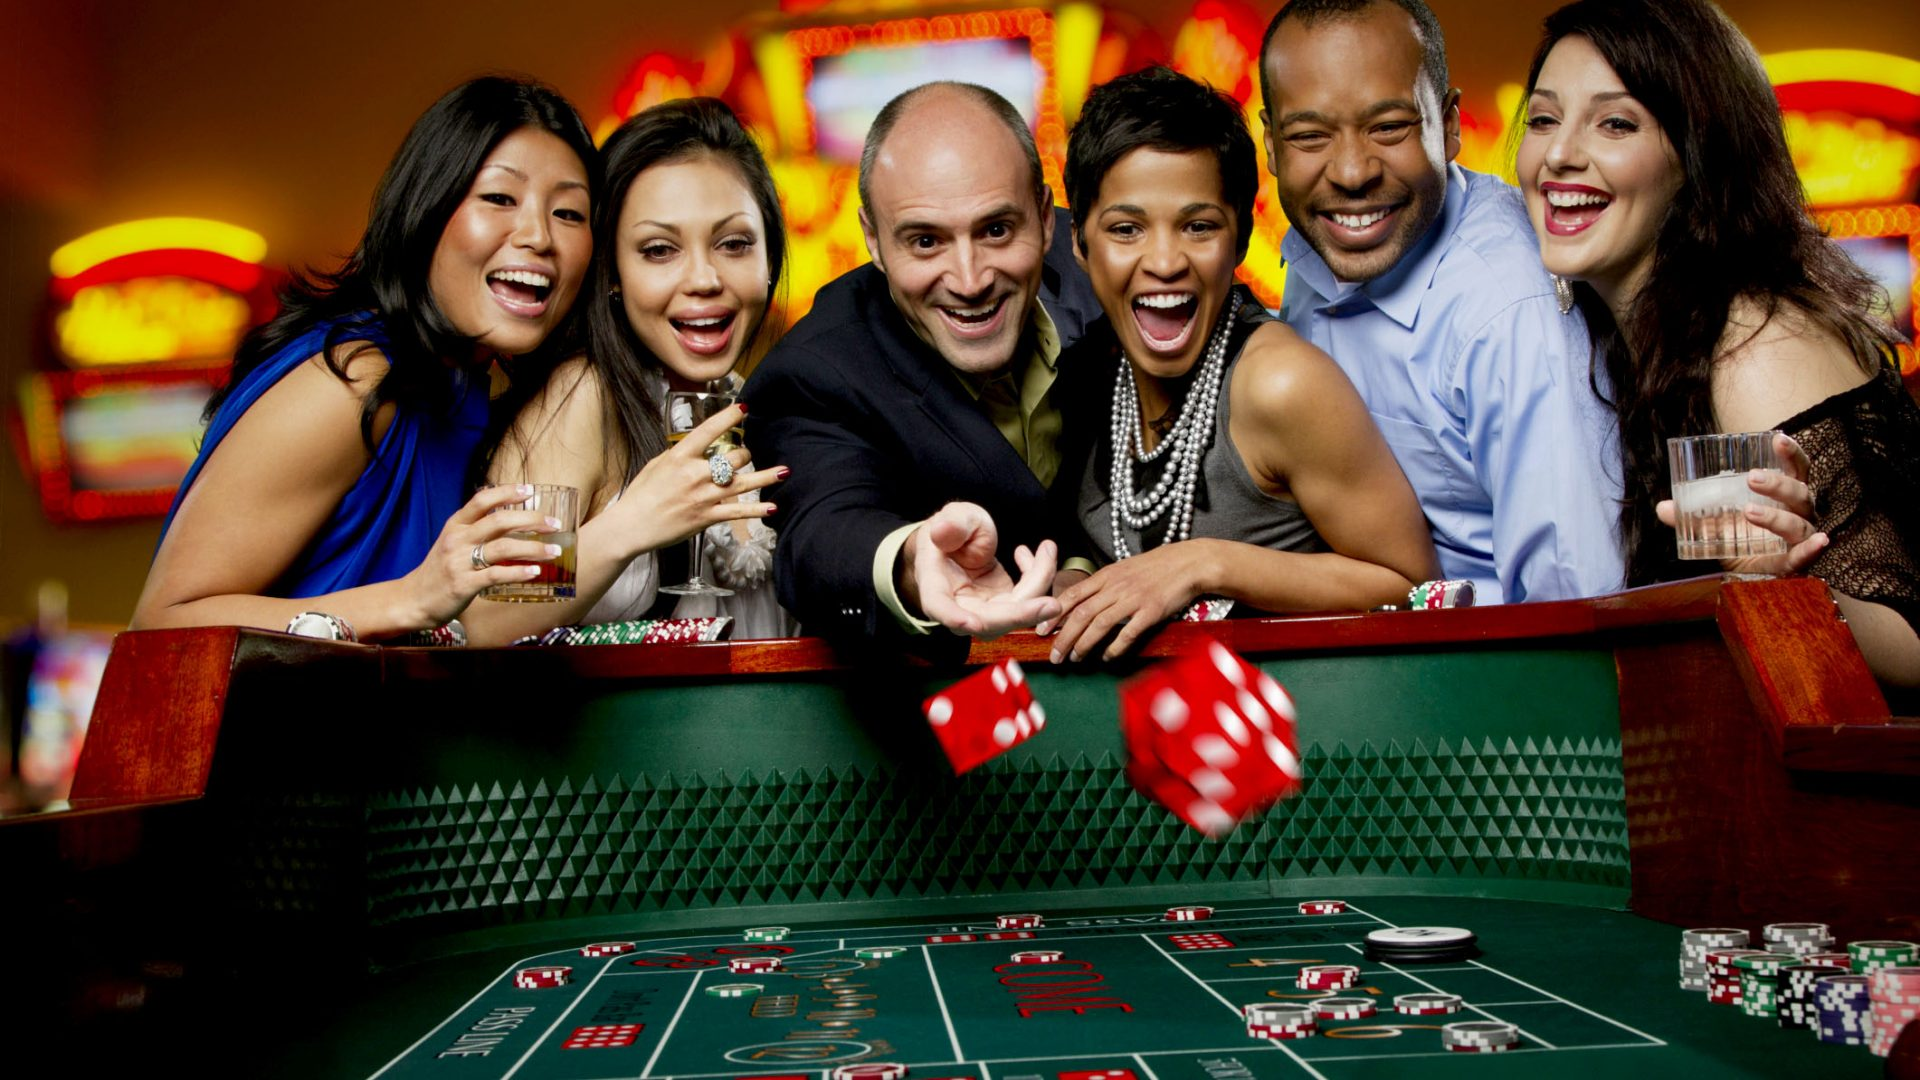 Making use of online betting websites is far better than playing casino games from traditional brick and mortar casinos